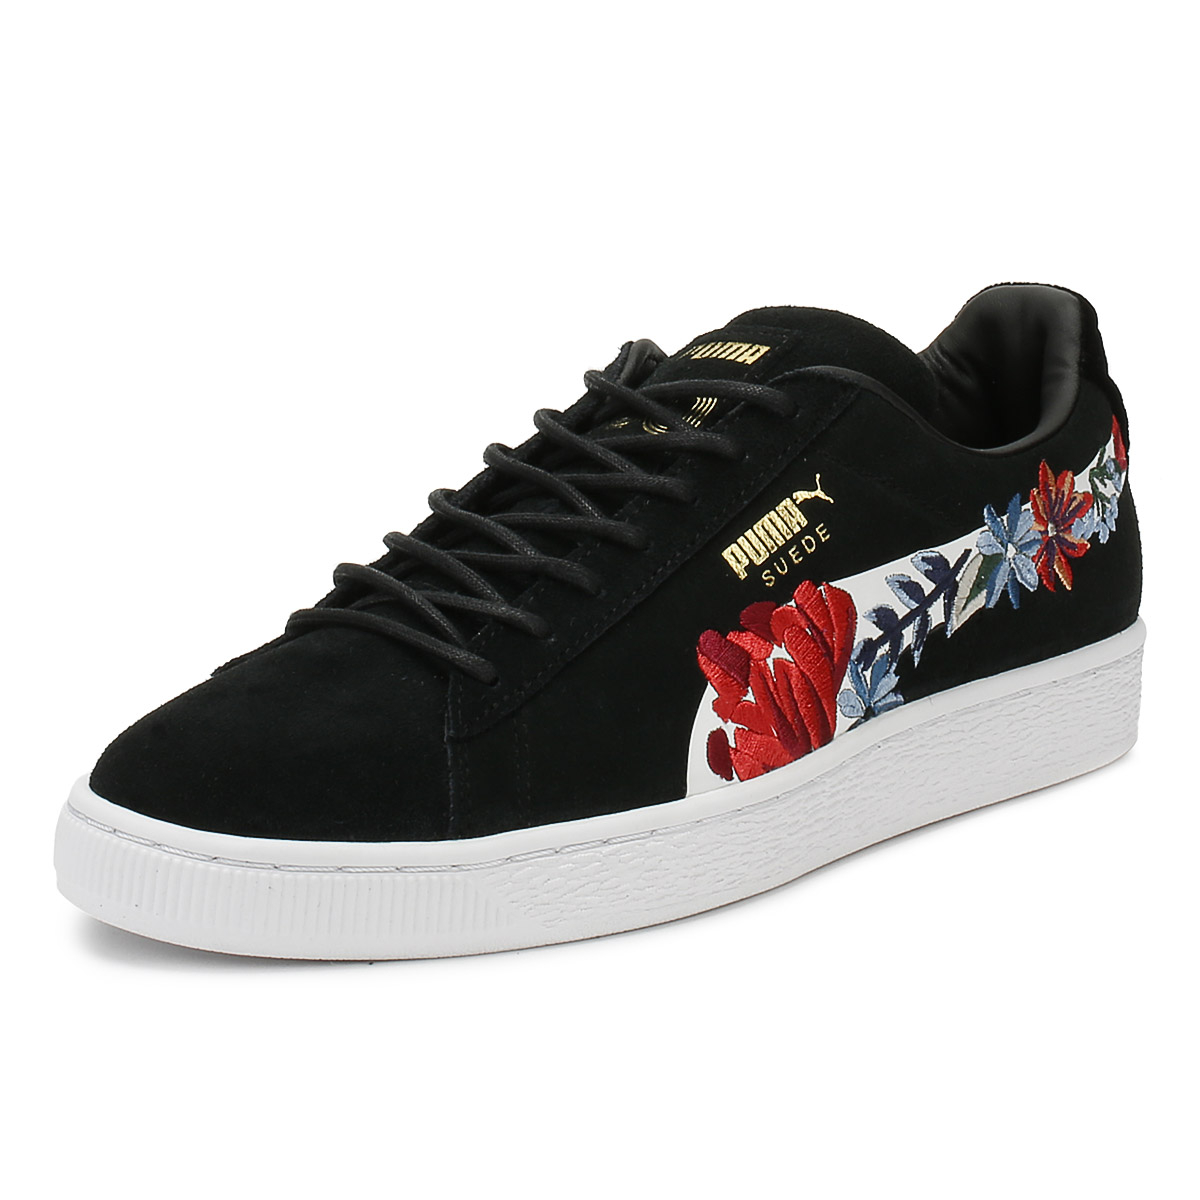 PUMA Womens Trainers Black Suede Classic Embroidery Lace Up Casual Shoes 46d6c2e8d